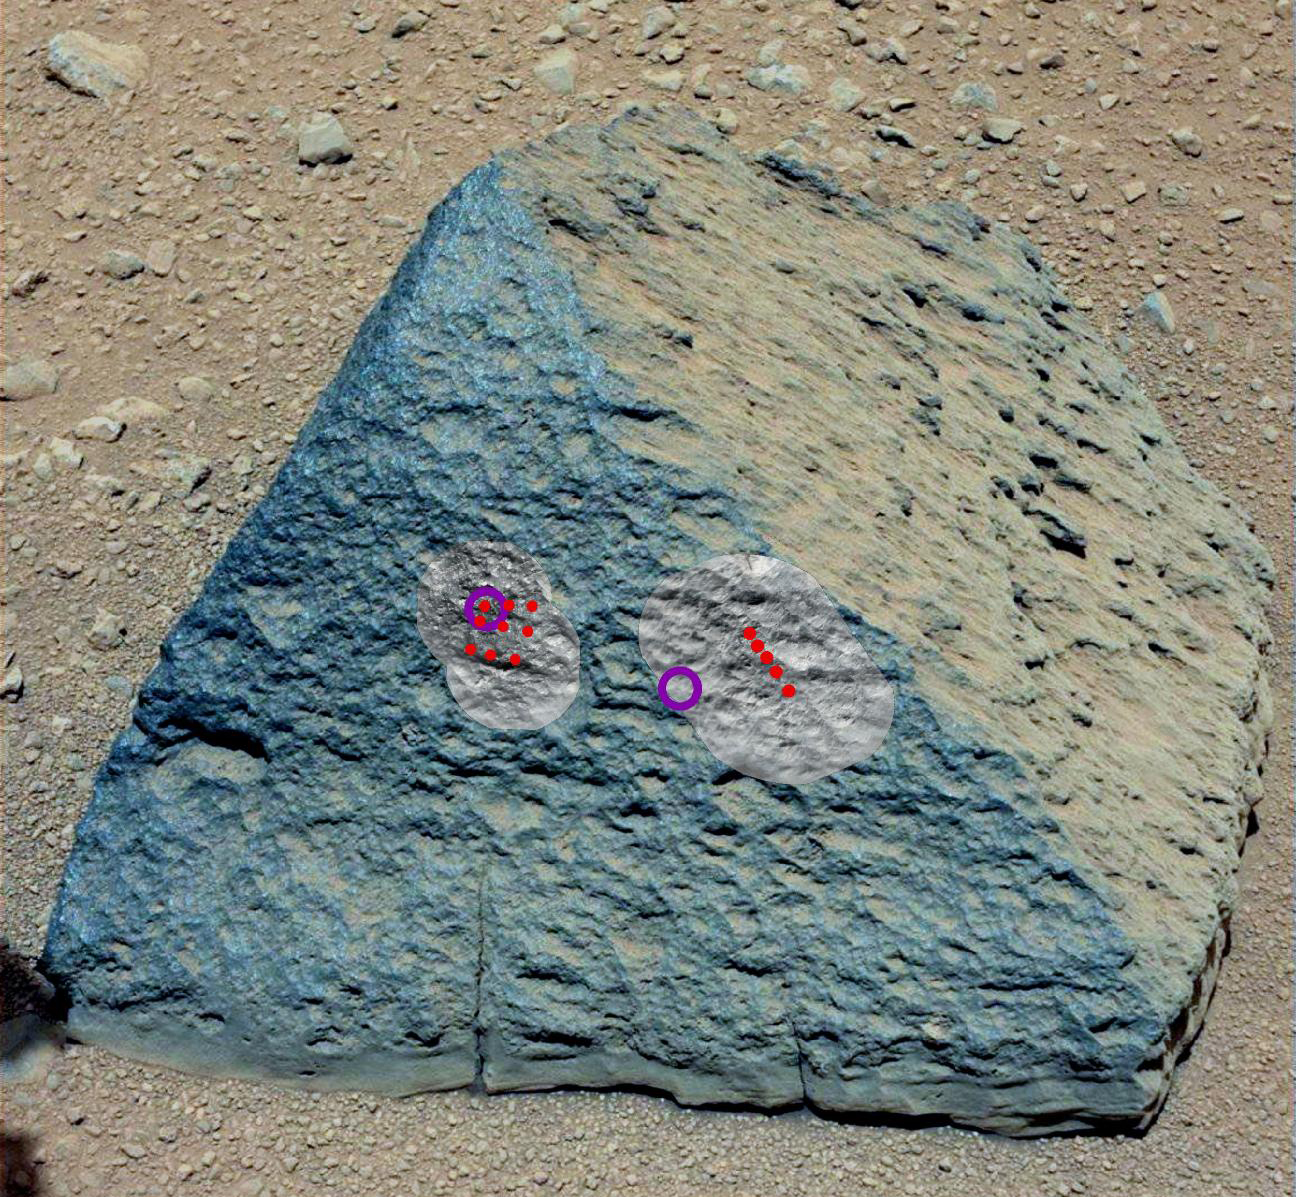 Mars Rover Curiosity's Pet Rock 'Jake'